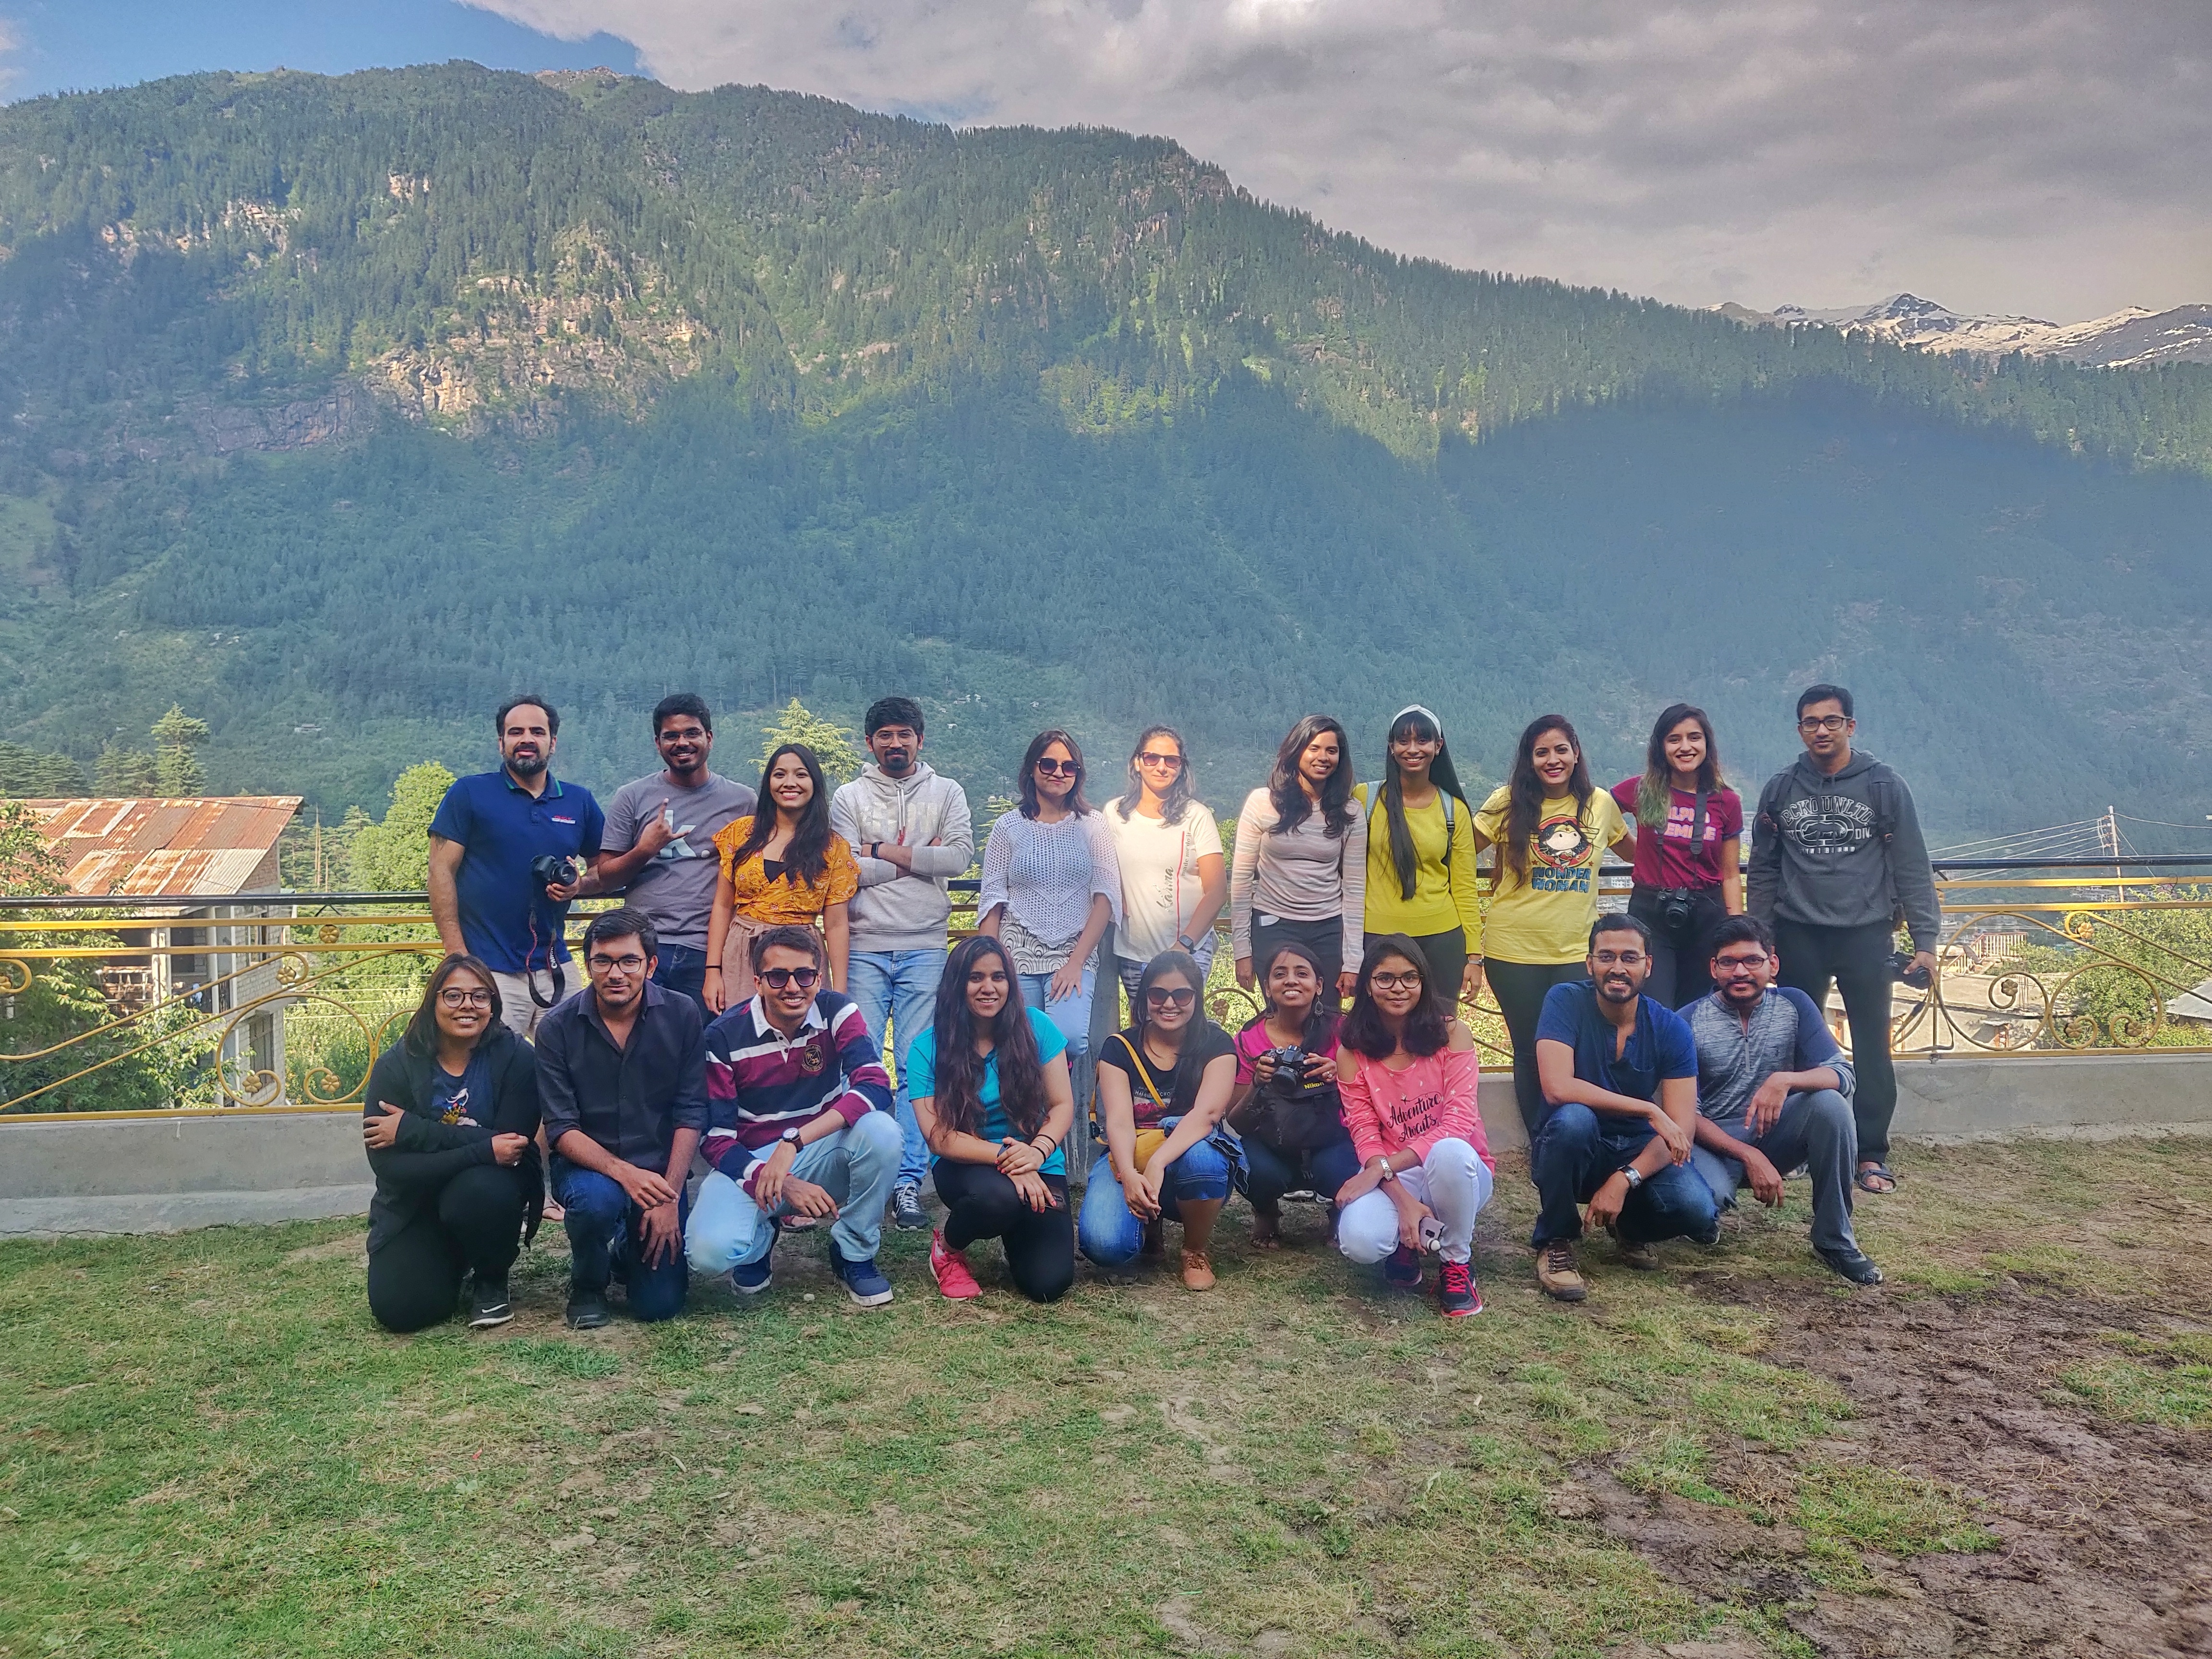 Manali in summers